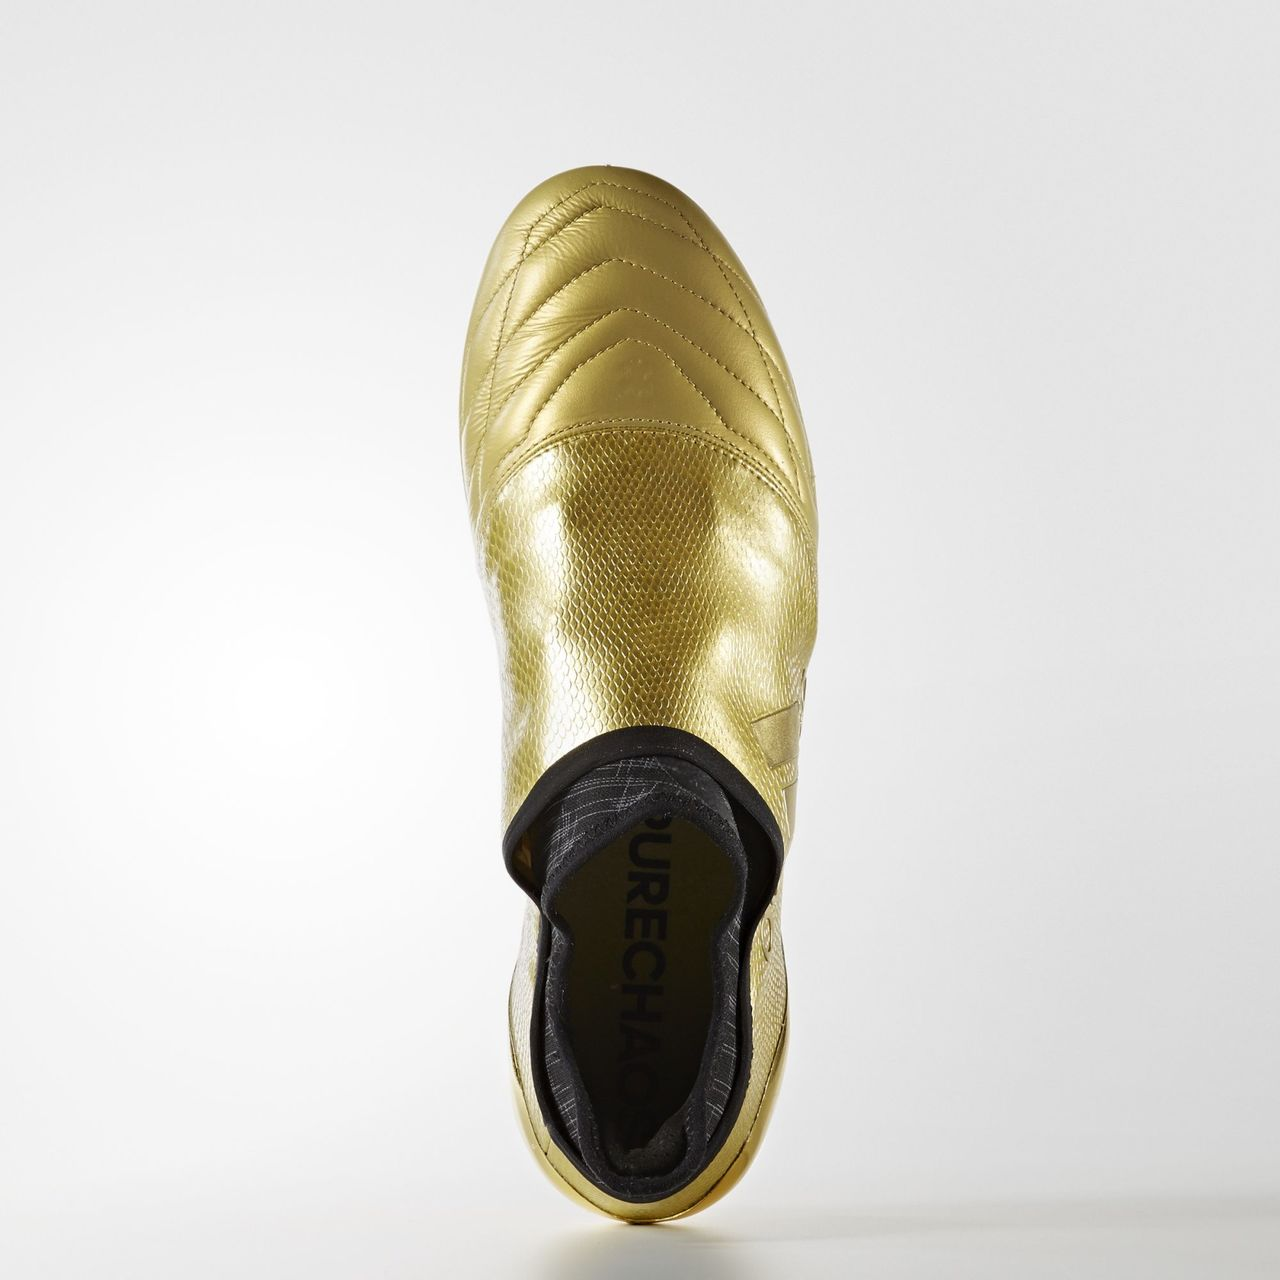 7e76253b8 ... Click to enlarge image  adidas_x_16_purechaos_fg_ag_space_craft_gold-metallic_b.jpg ...